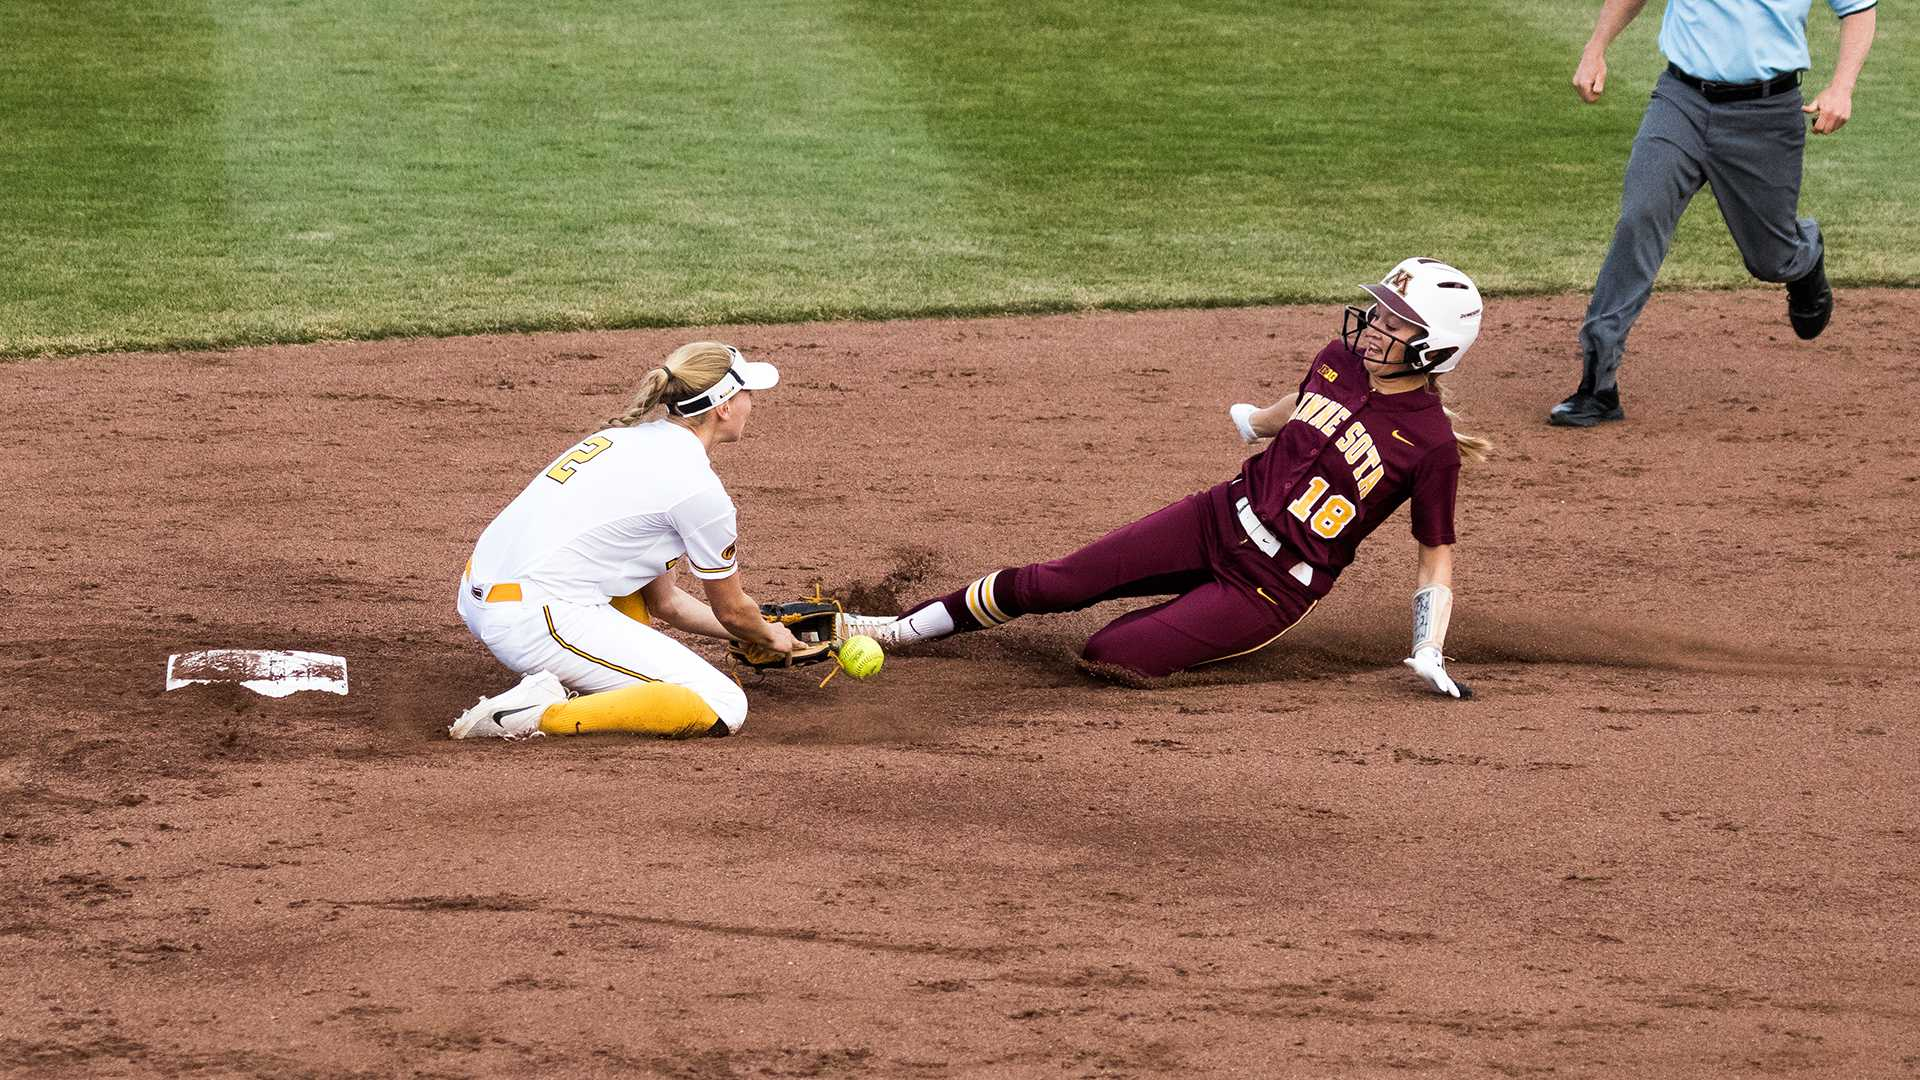 University of Iowa softball player Aralee Bogar drops the ball during a game against the University of Minnesota on Thursday, Apr. 12, 2018. The runner was safe at second base and the Gophers defeated the Hawkeyes 8-0. (David Harmantas/The Daily Iowan)